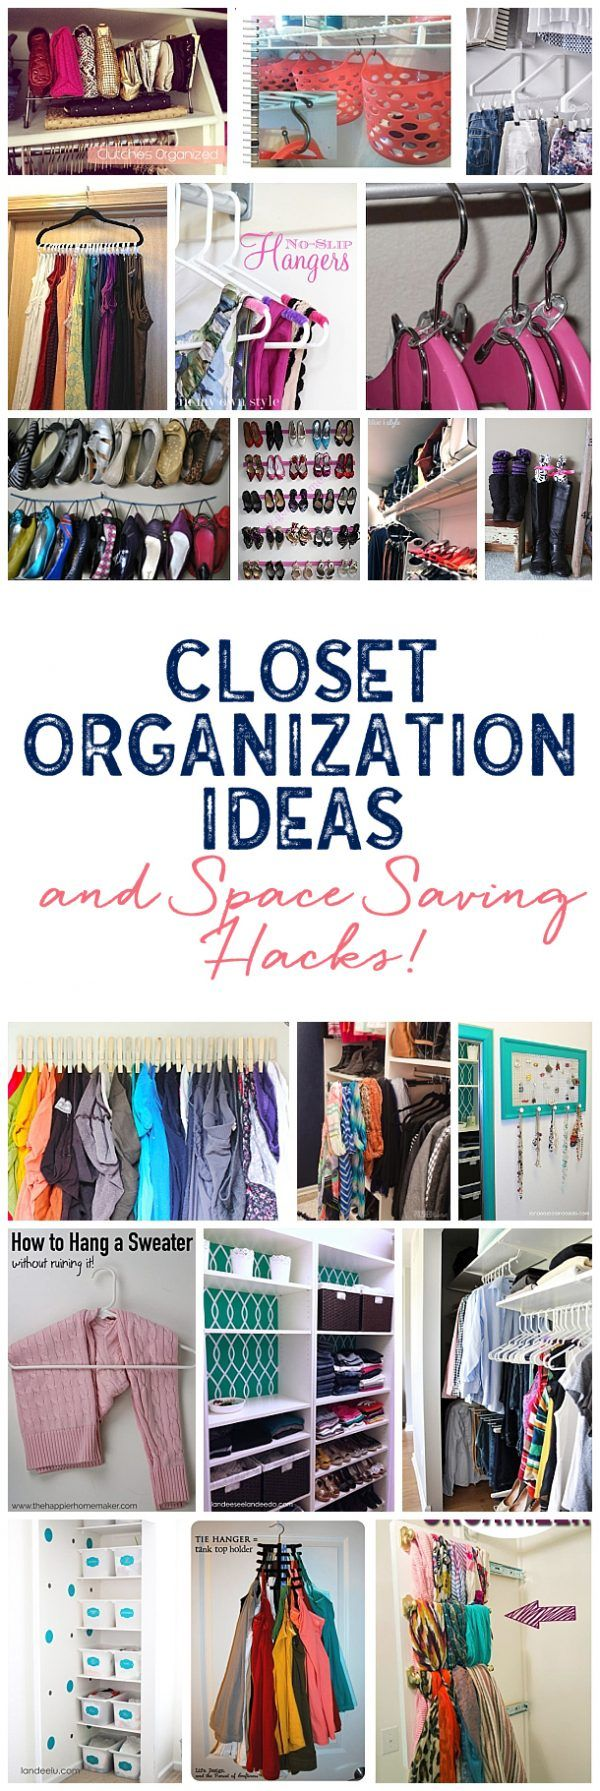 So many awesome closet organization ideas to make your closet the most functiona...